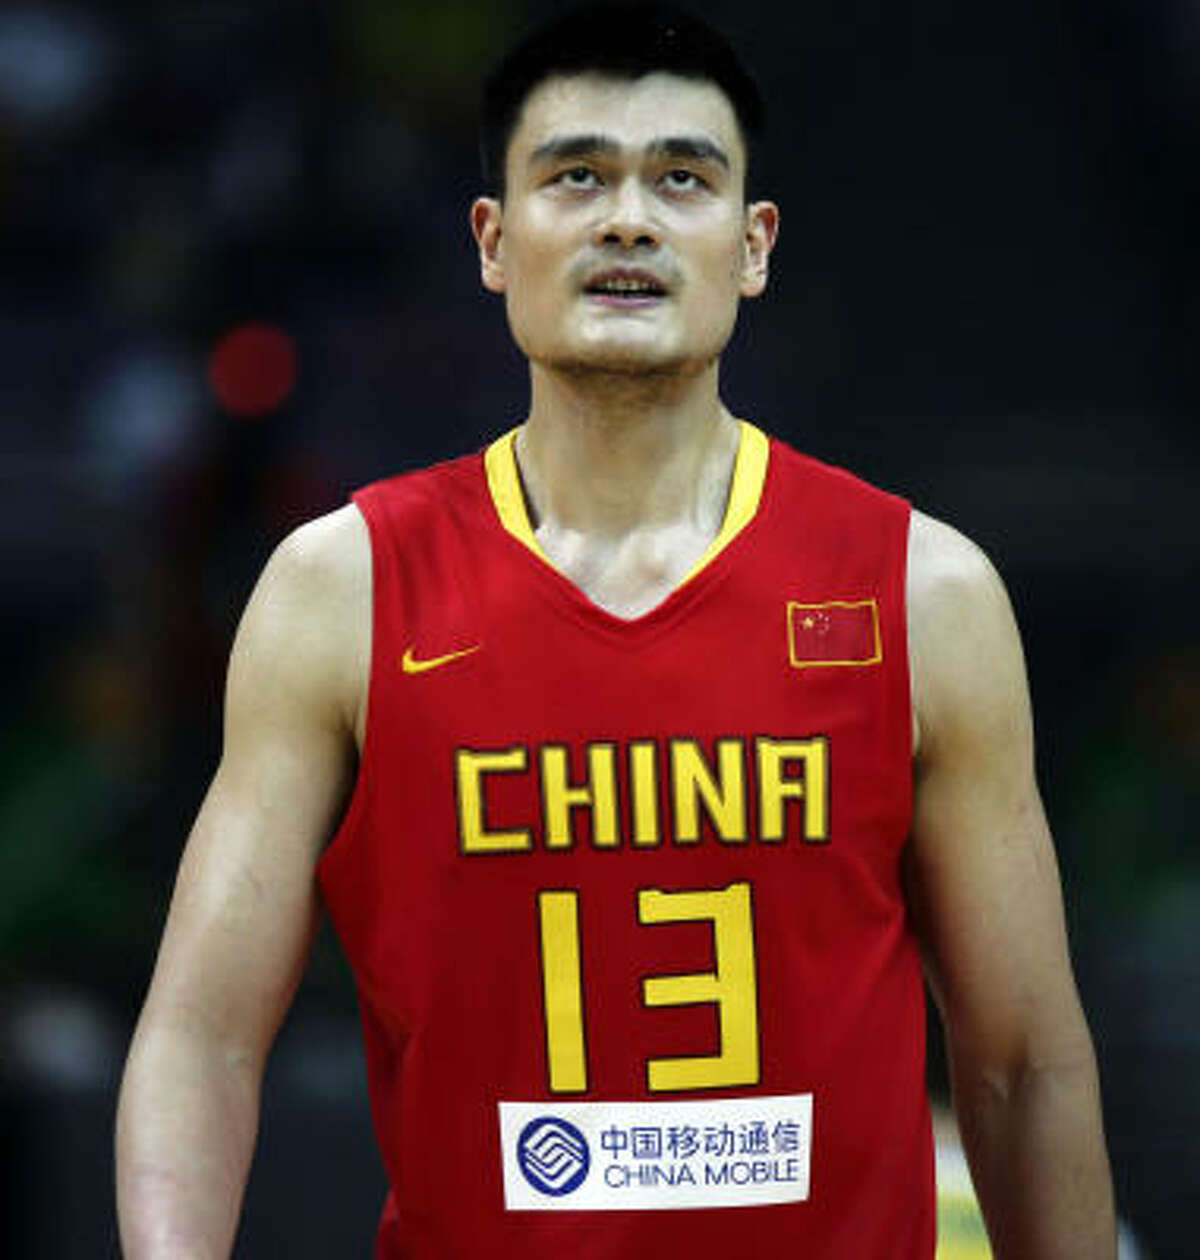 Yao Ming heard about the trade while he and Luis Scola were at a tourney in Nanjing, China.